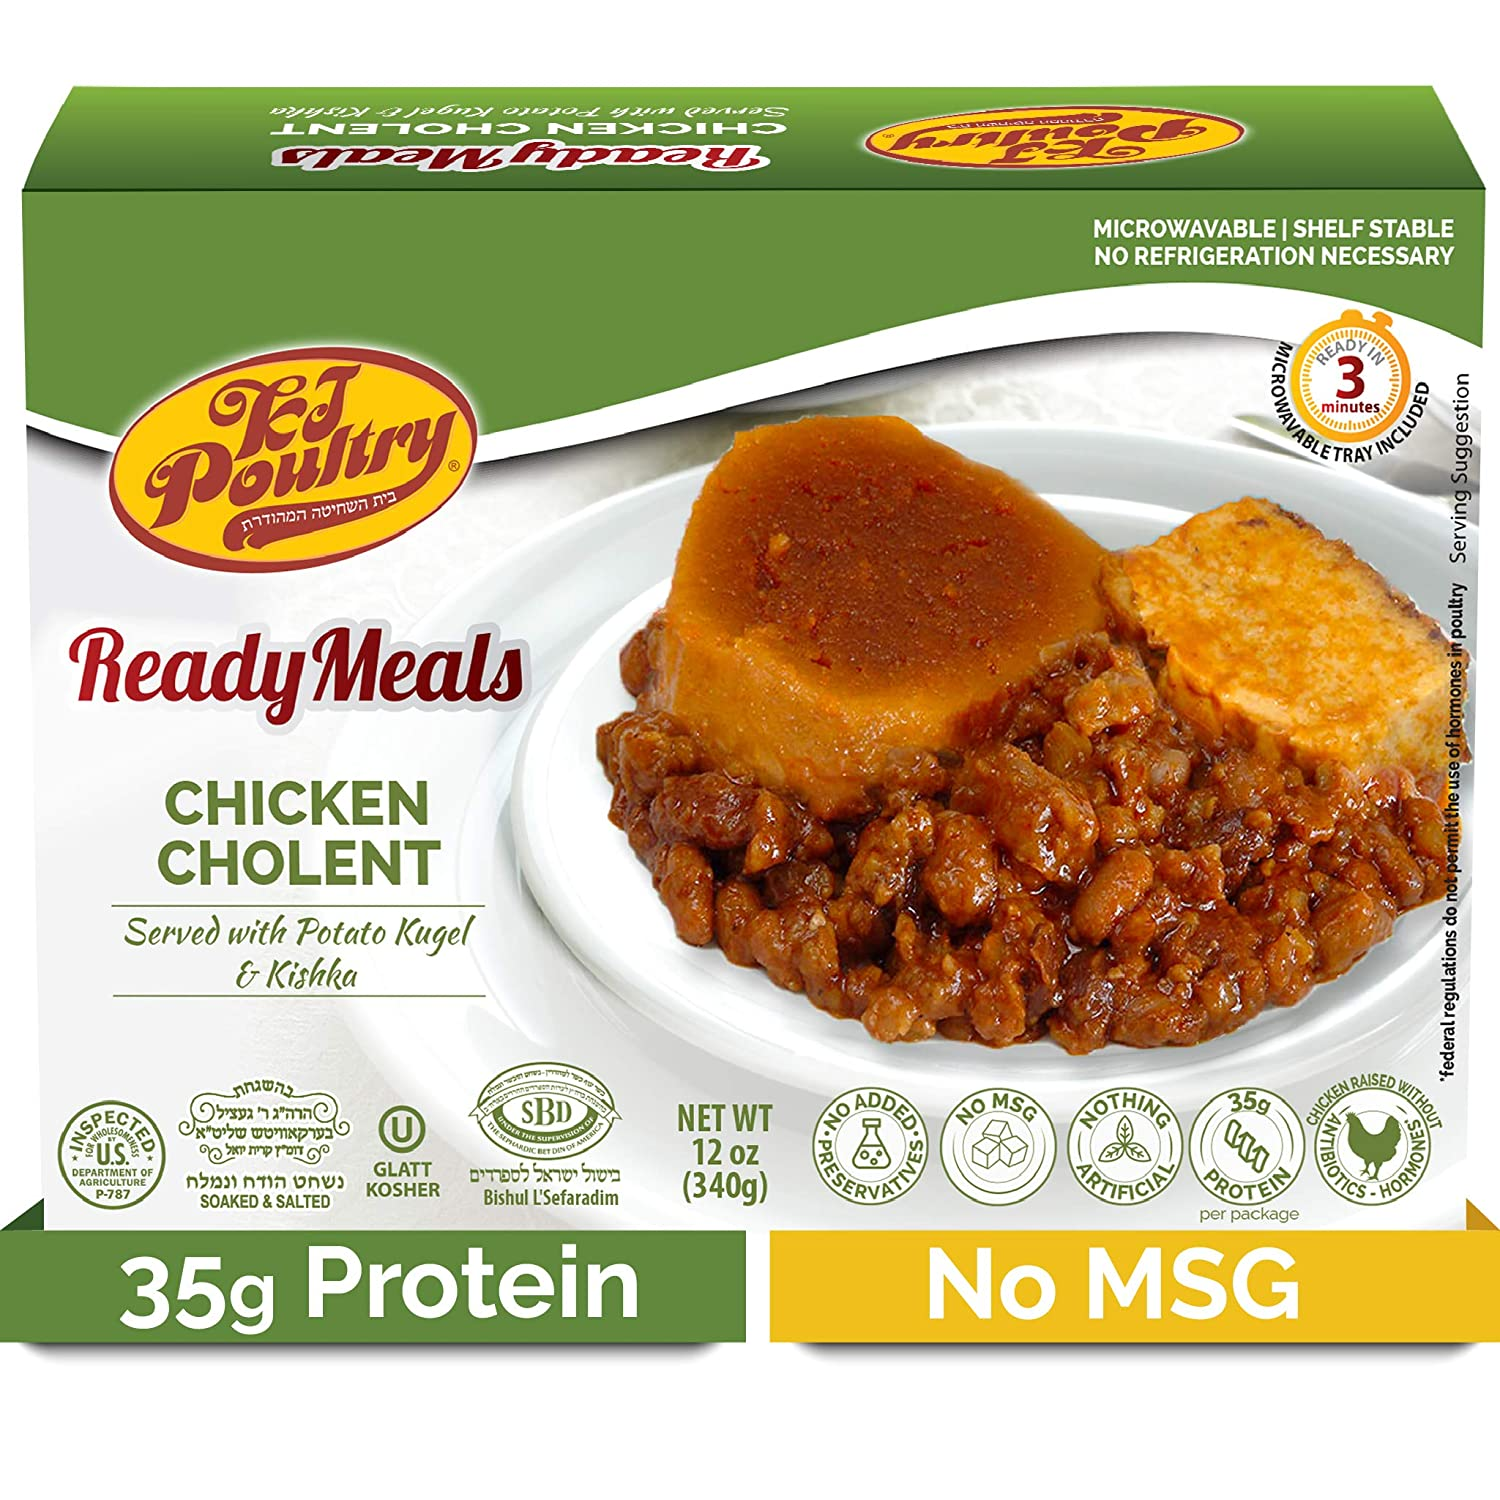 Kosher Mre Meat Meals Ready to Eat, Chicken Cholent (1 Pack) 35g Protien - Prepared Entree Fully Cooked, Shelf Stable Microwave Dinner – Travel, Military, Camping, Emergency Survival Canned Food Kit